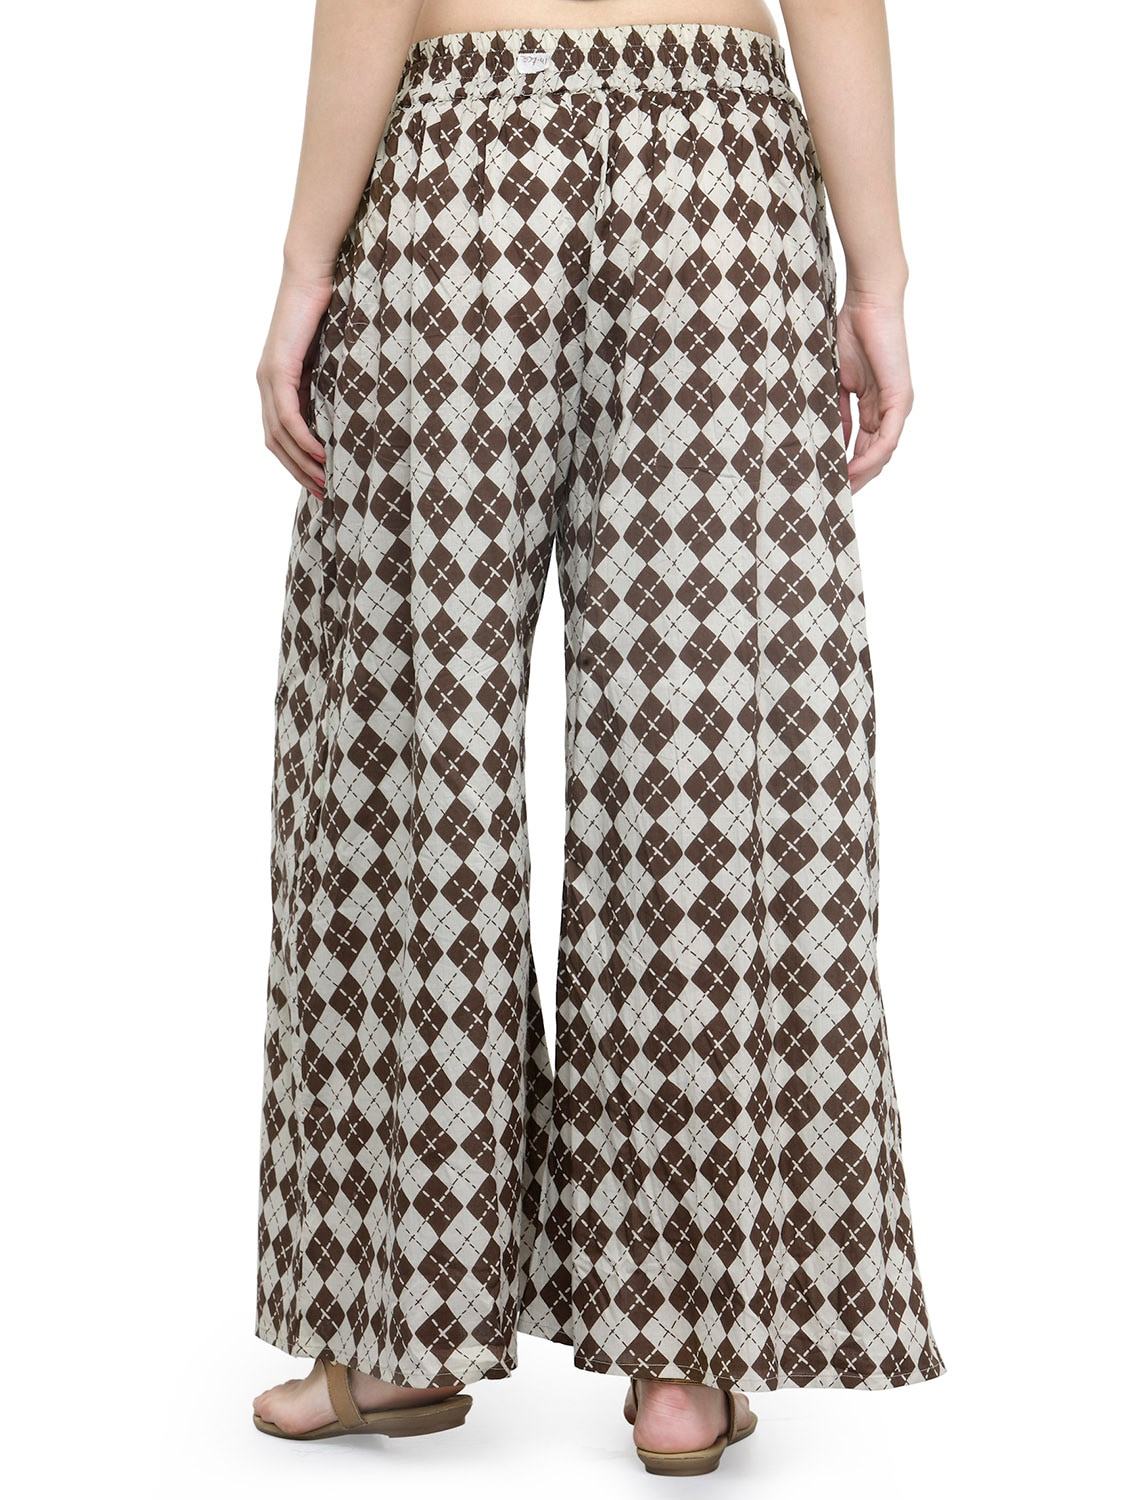 436944699d Buy Brown Checkered Cotton Palazzo for Women from Natty India for ₹994 at  60% off | 2019 Limeroad.com